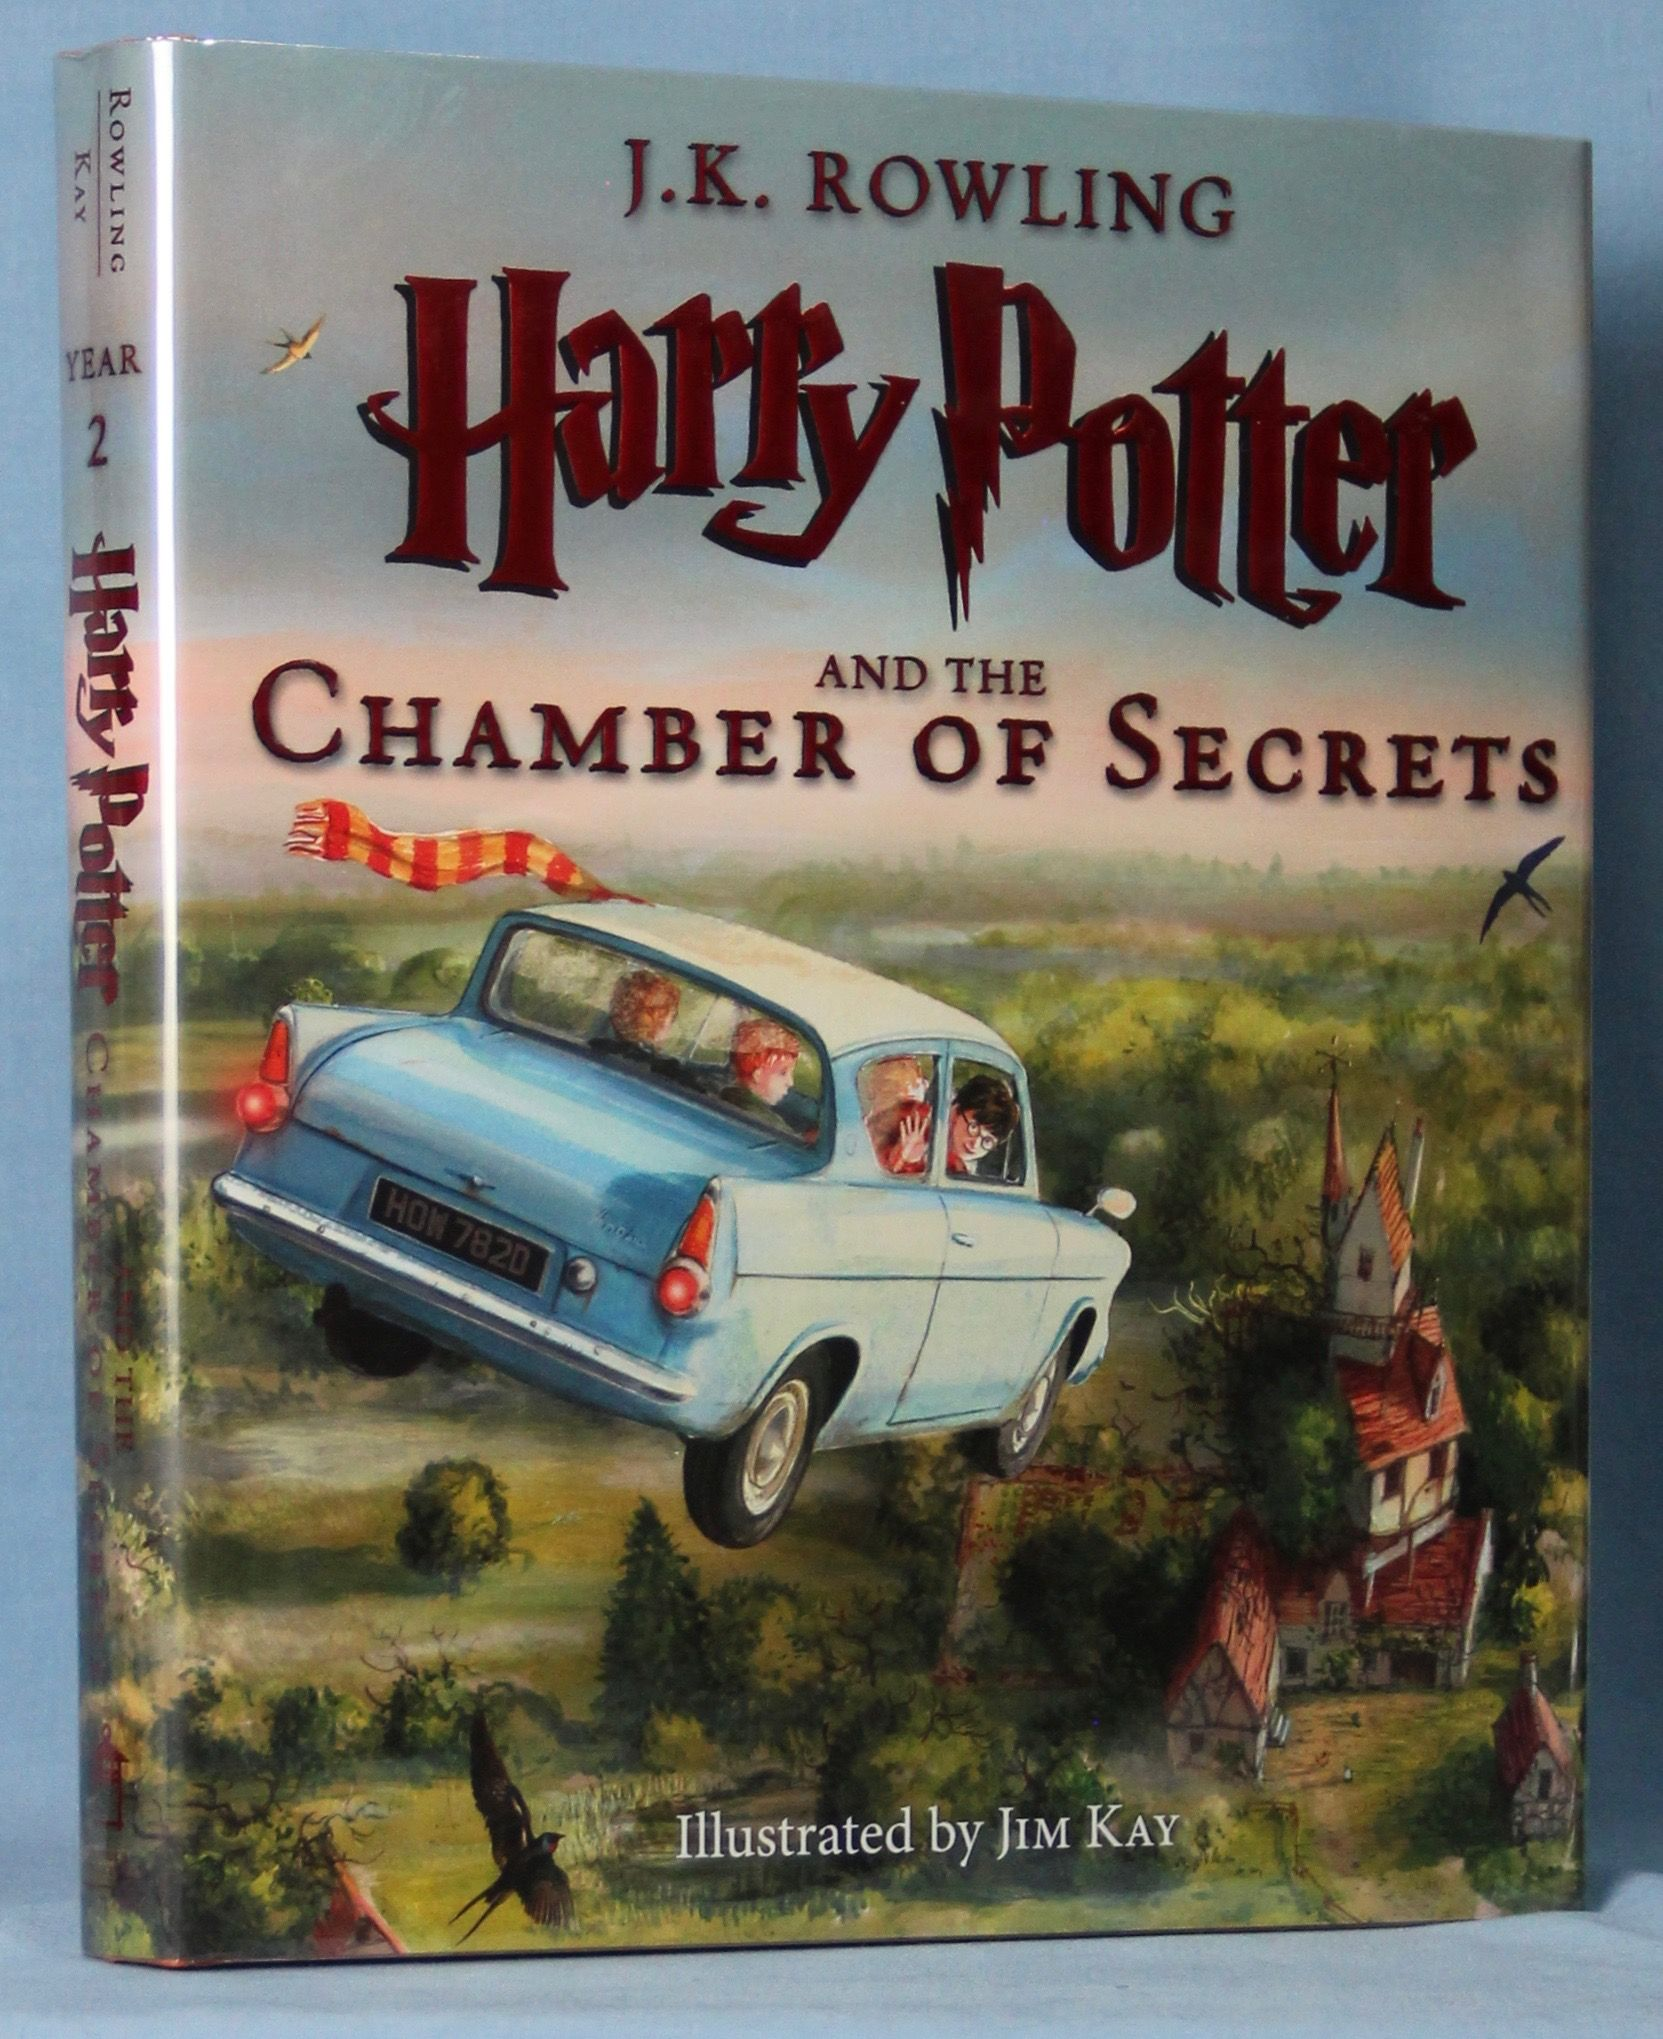 Image for Harry Potter and the Chamber of Secrets: The Illustrated Edition (Harry Potter, Book 2)